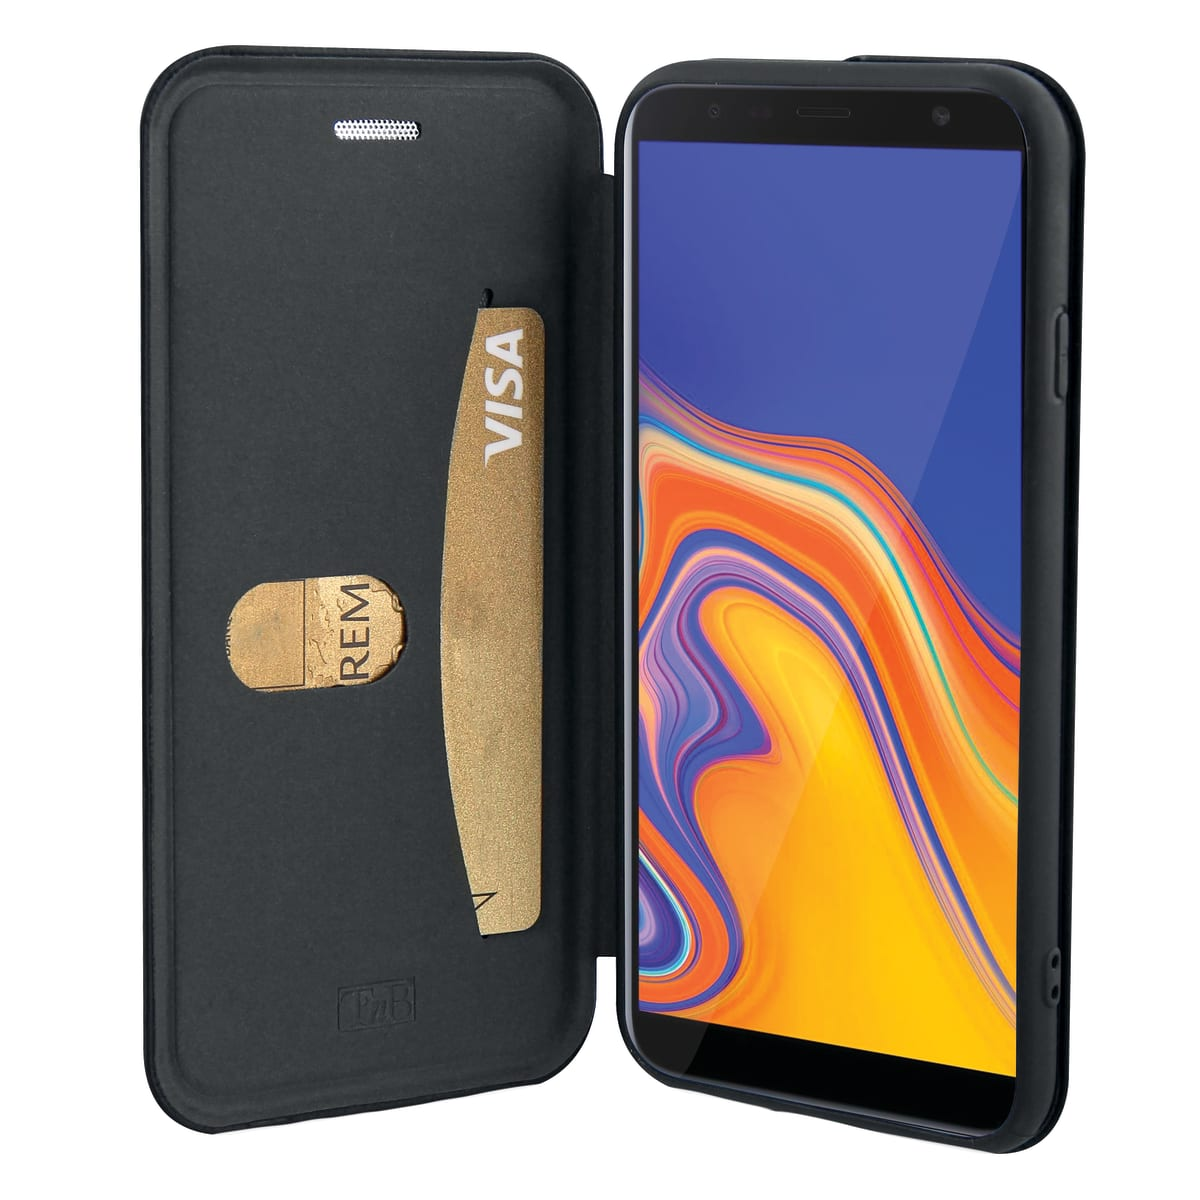 Premium folio case for Samsung Galaxy J4 Plus.